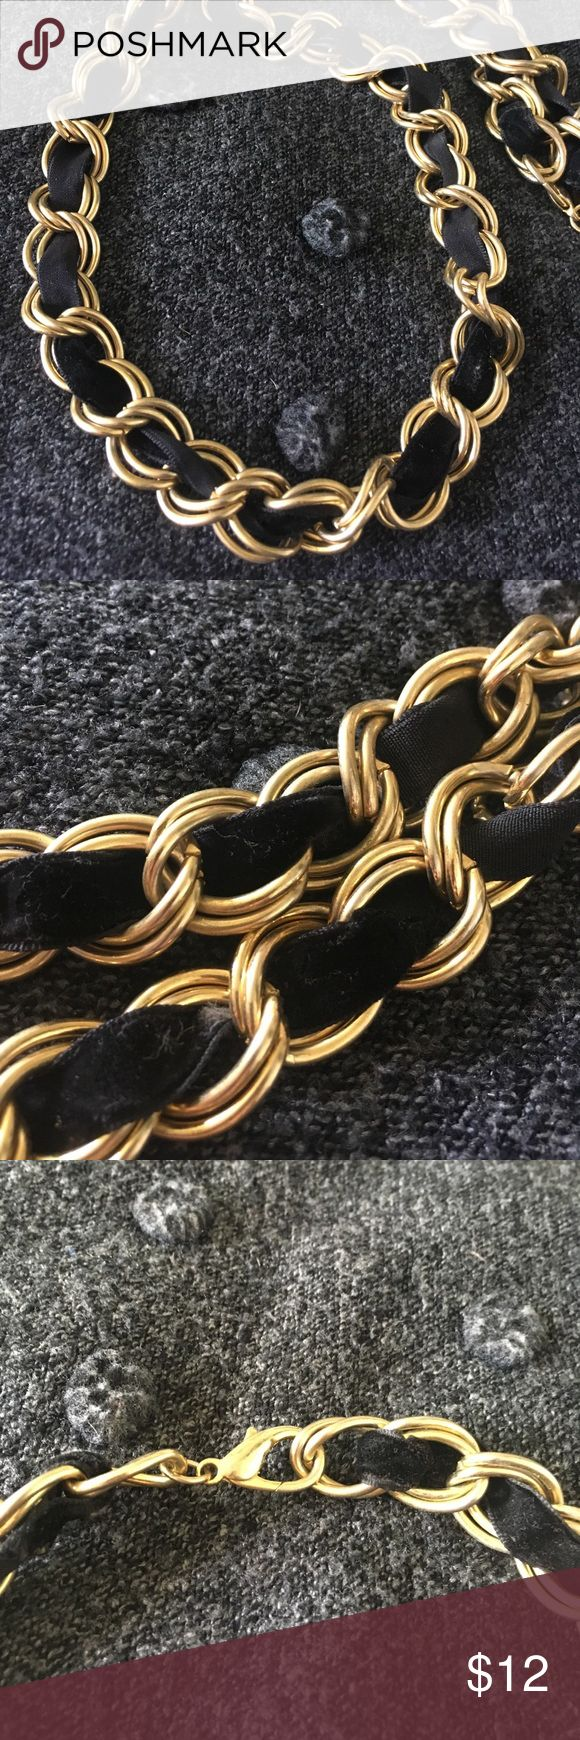 "Long Gold Tone Chunky Ribbon Chain Necklace Very cool gold tone Chunky chain necklace with a black velvet ribbon interwoven throughout. Looks great with a blazer or over a dress. Length measure 32"" Jewelry Necklaces"